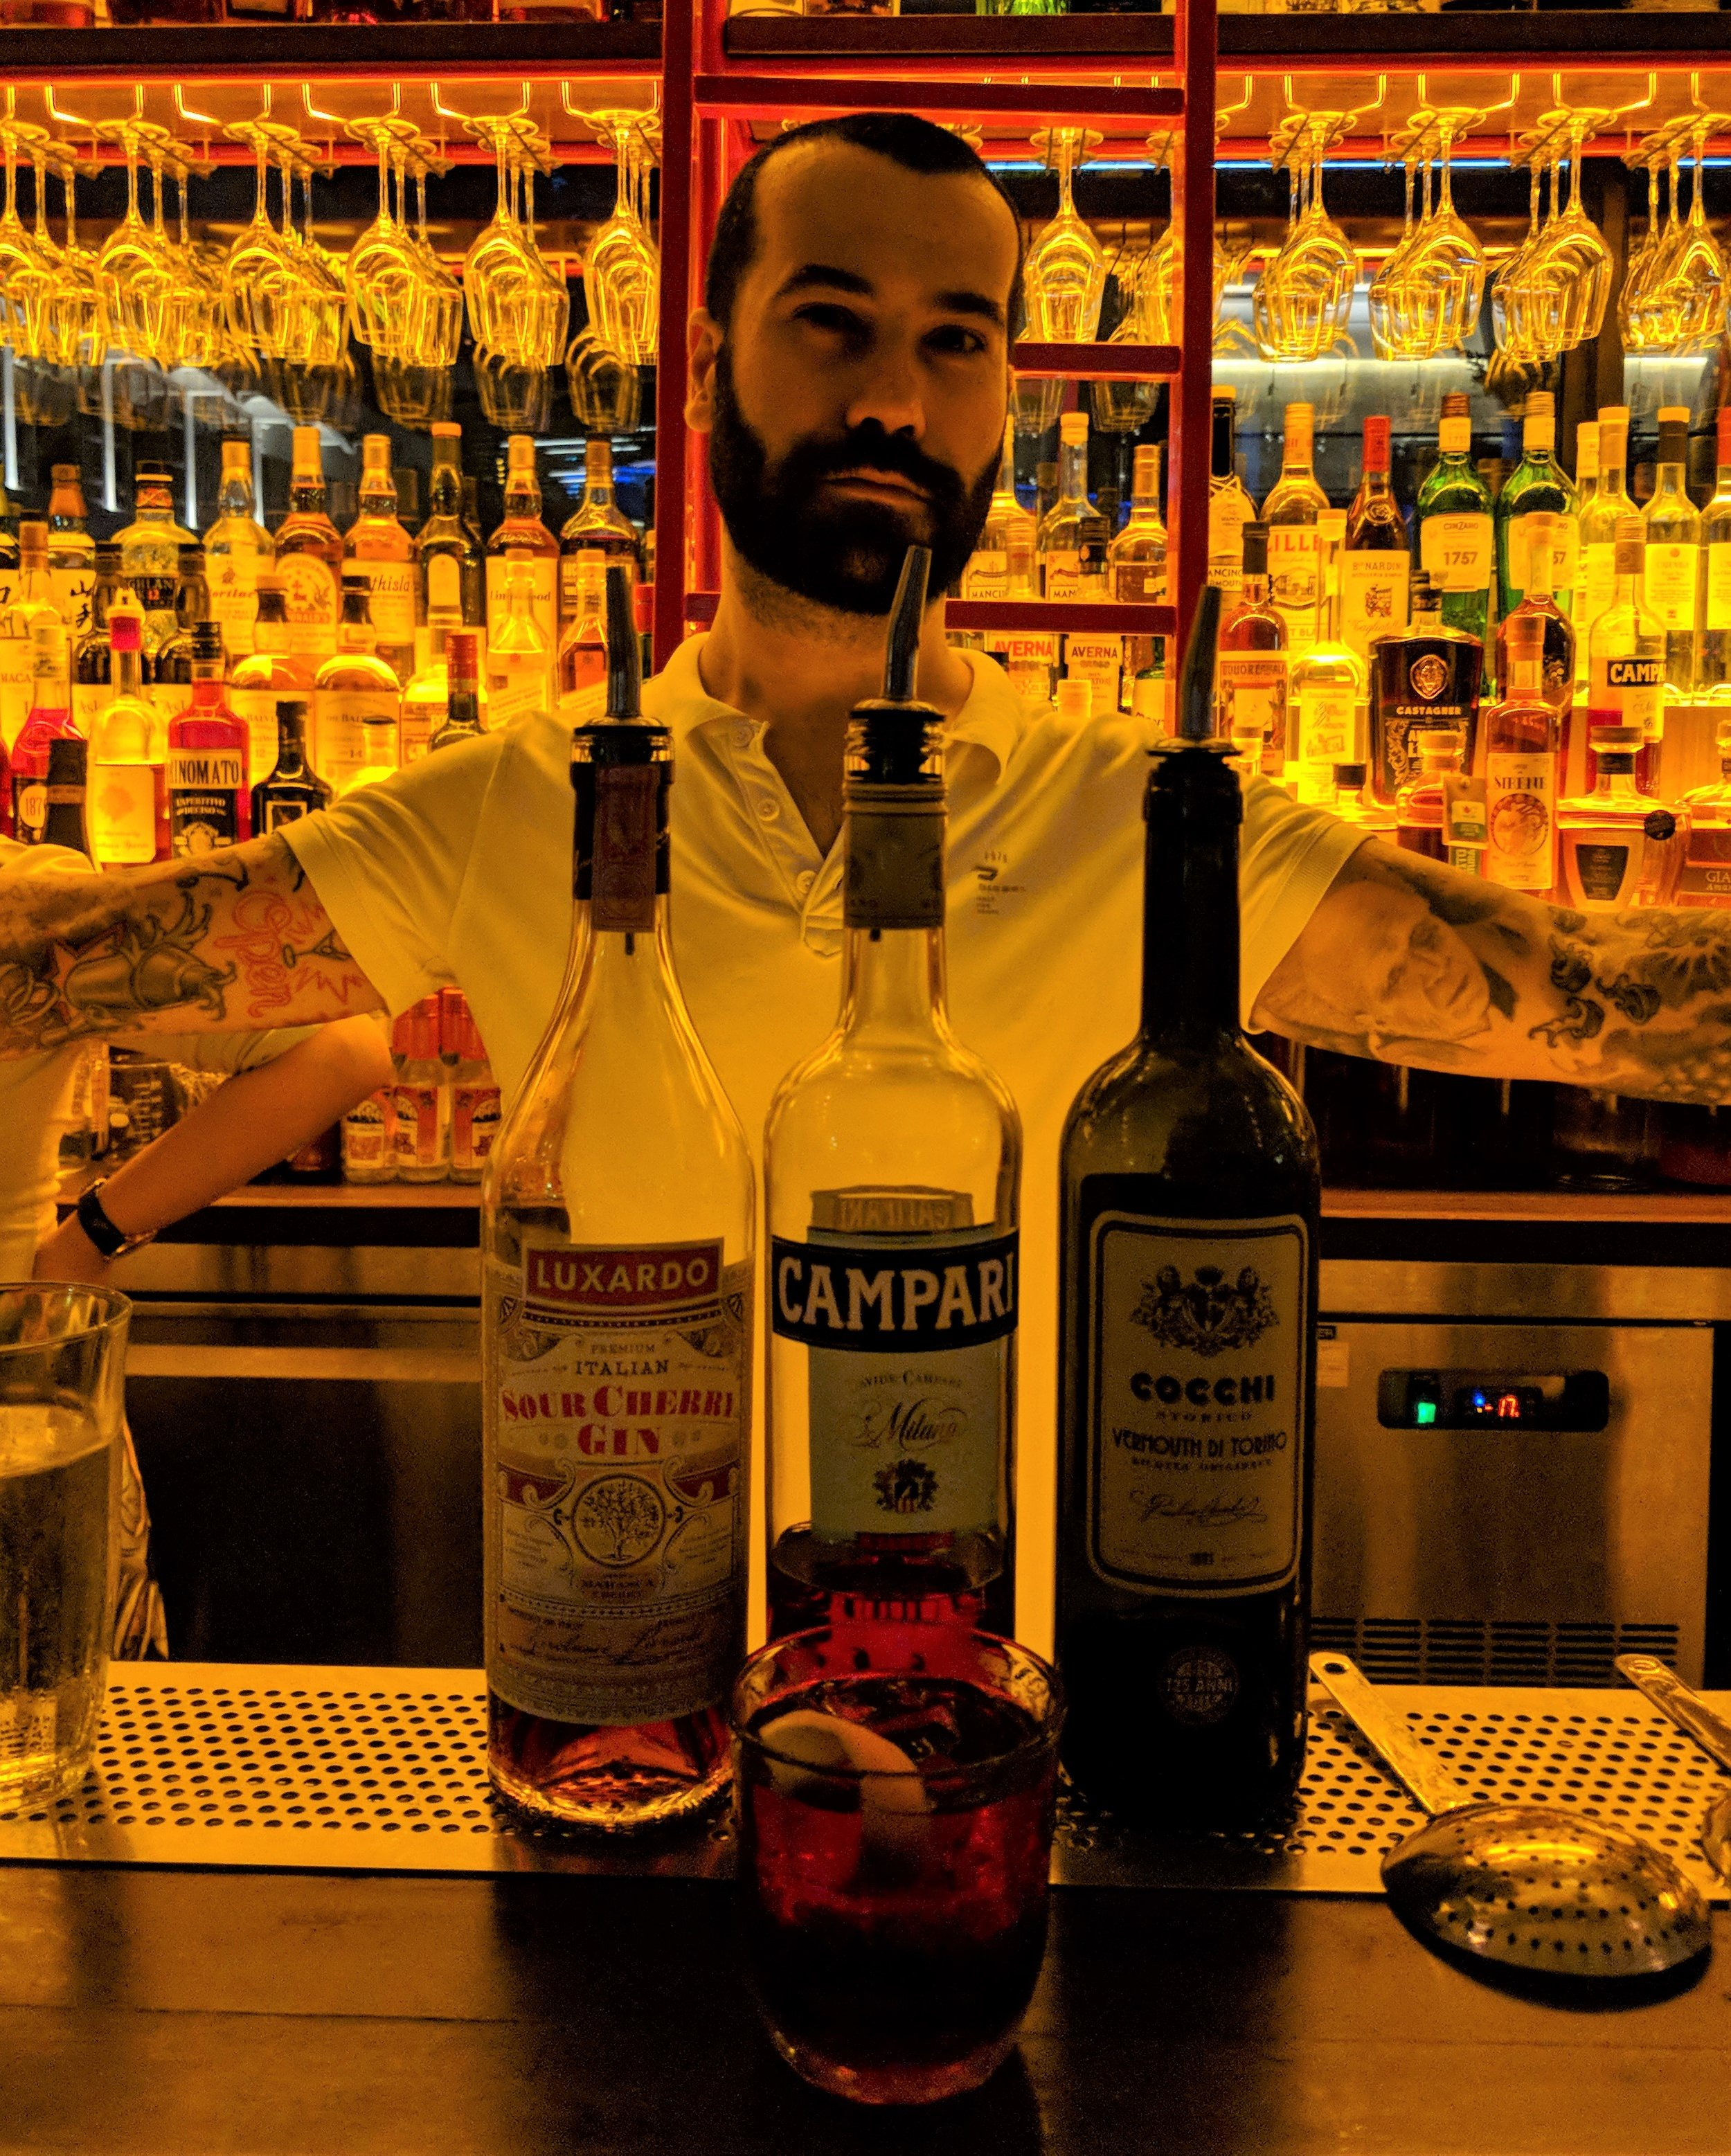 Job done! The last drink is a Sour cherry Negroni with Luxardo sour cherry gin, Campari bitter, and Cocchi Vermouth di Torino